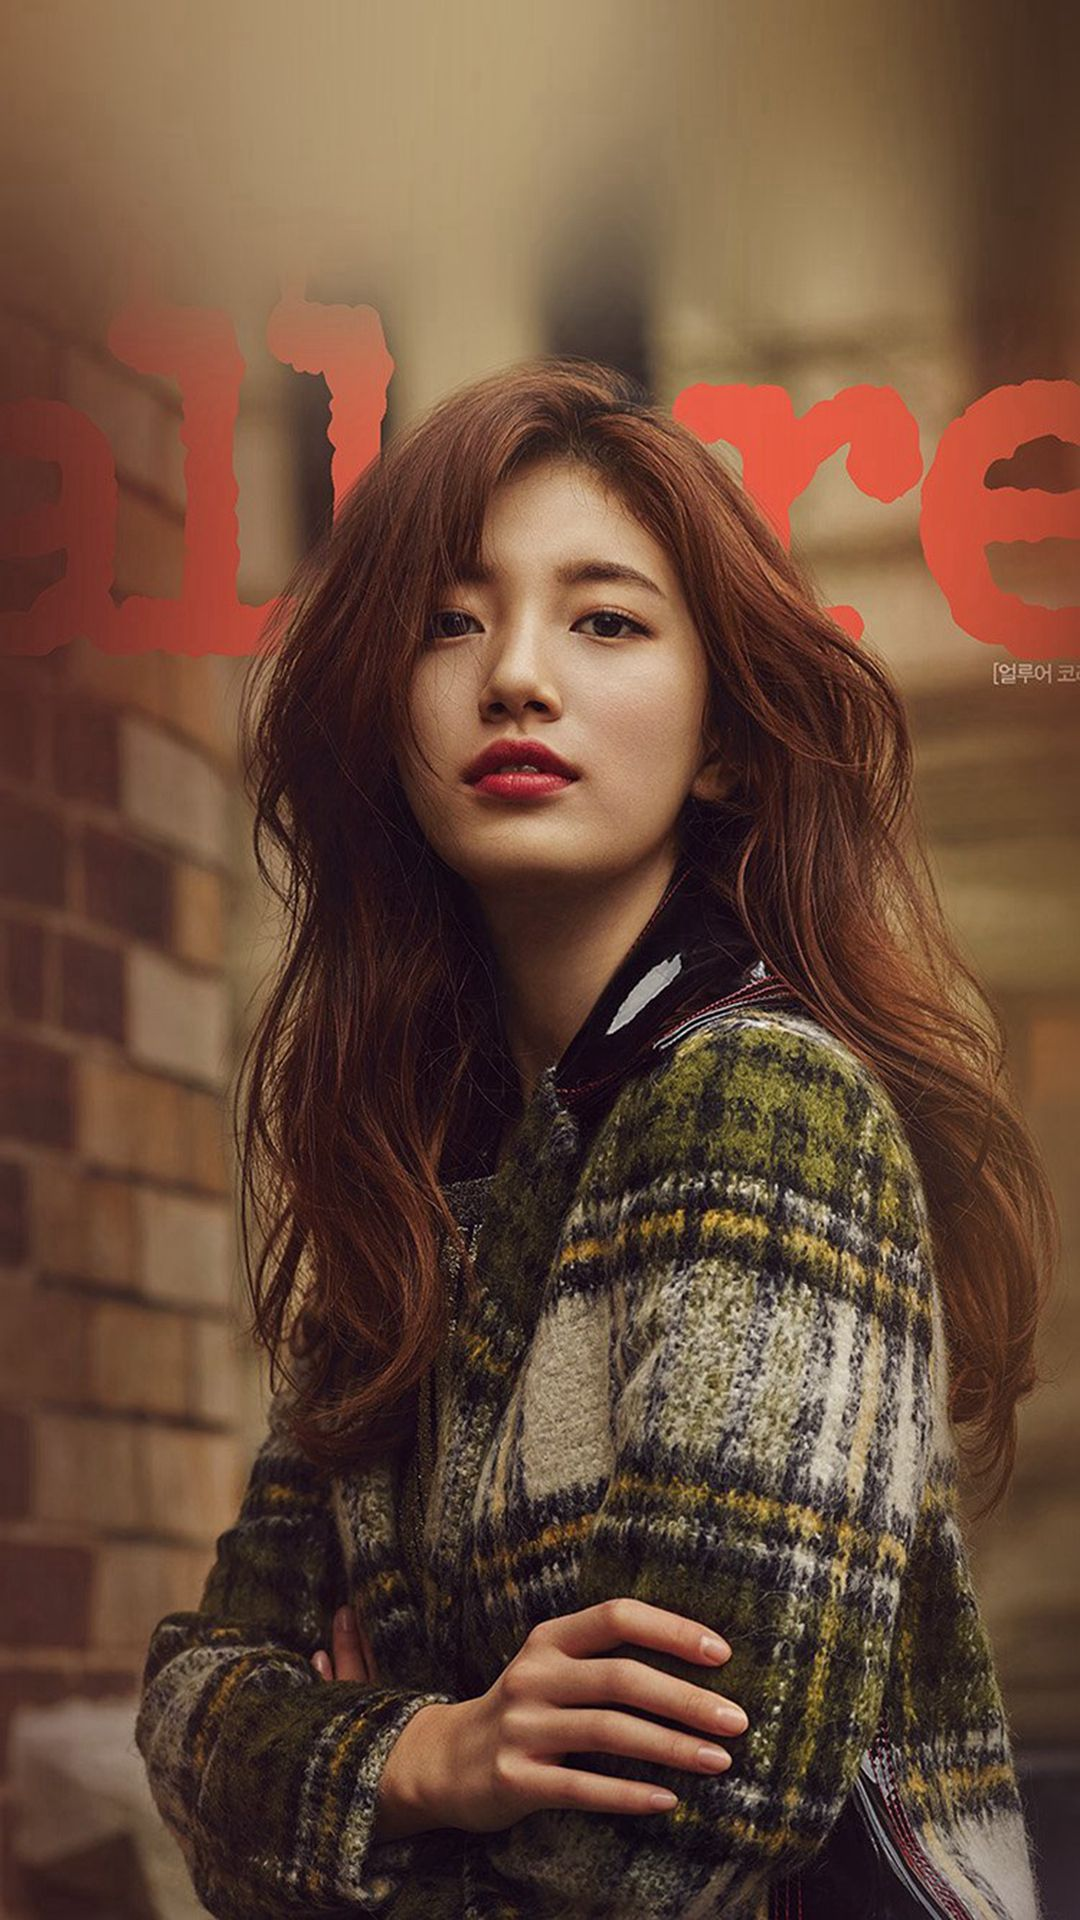 Kpop Girl Suji Fall Iphone 8 Wallpaper Bae Suzy Miss A Suzy Beauty Girl